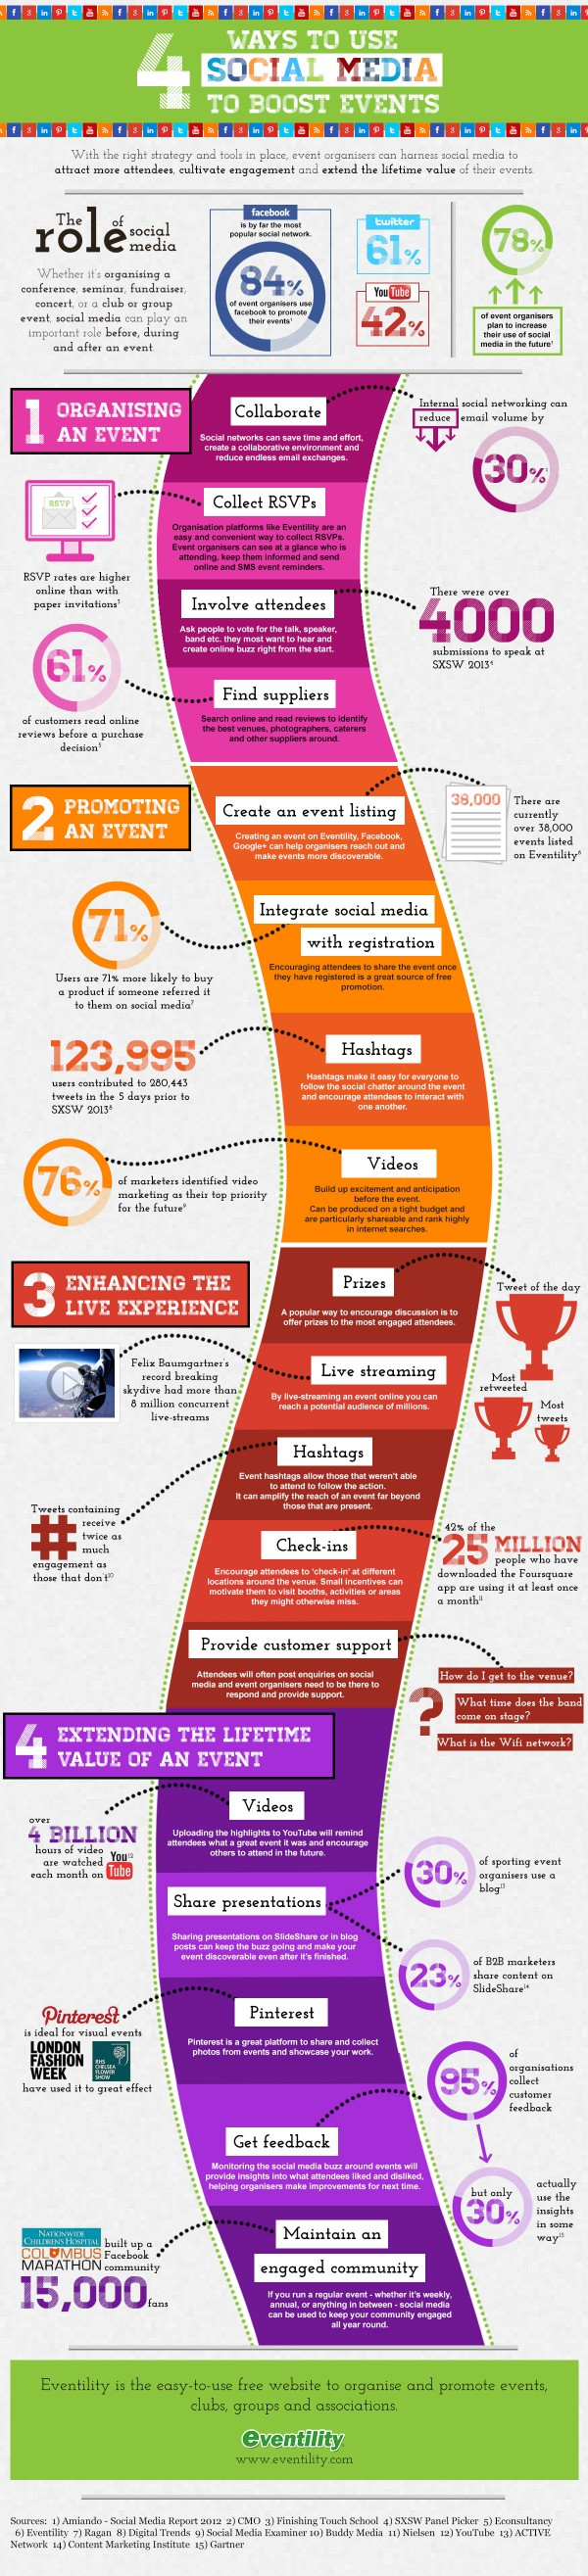 We are Social Media - Infographic